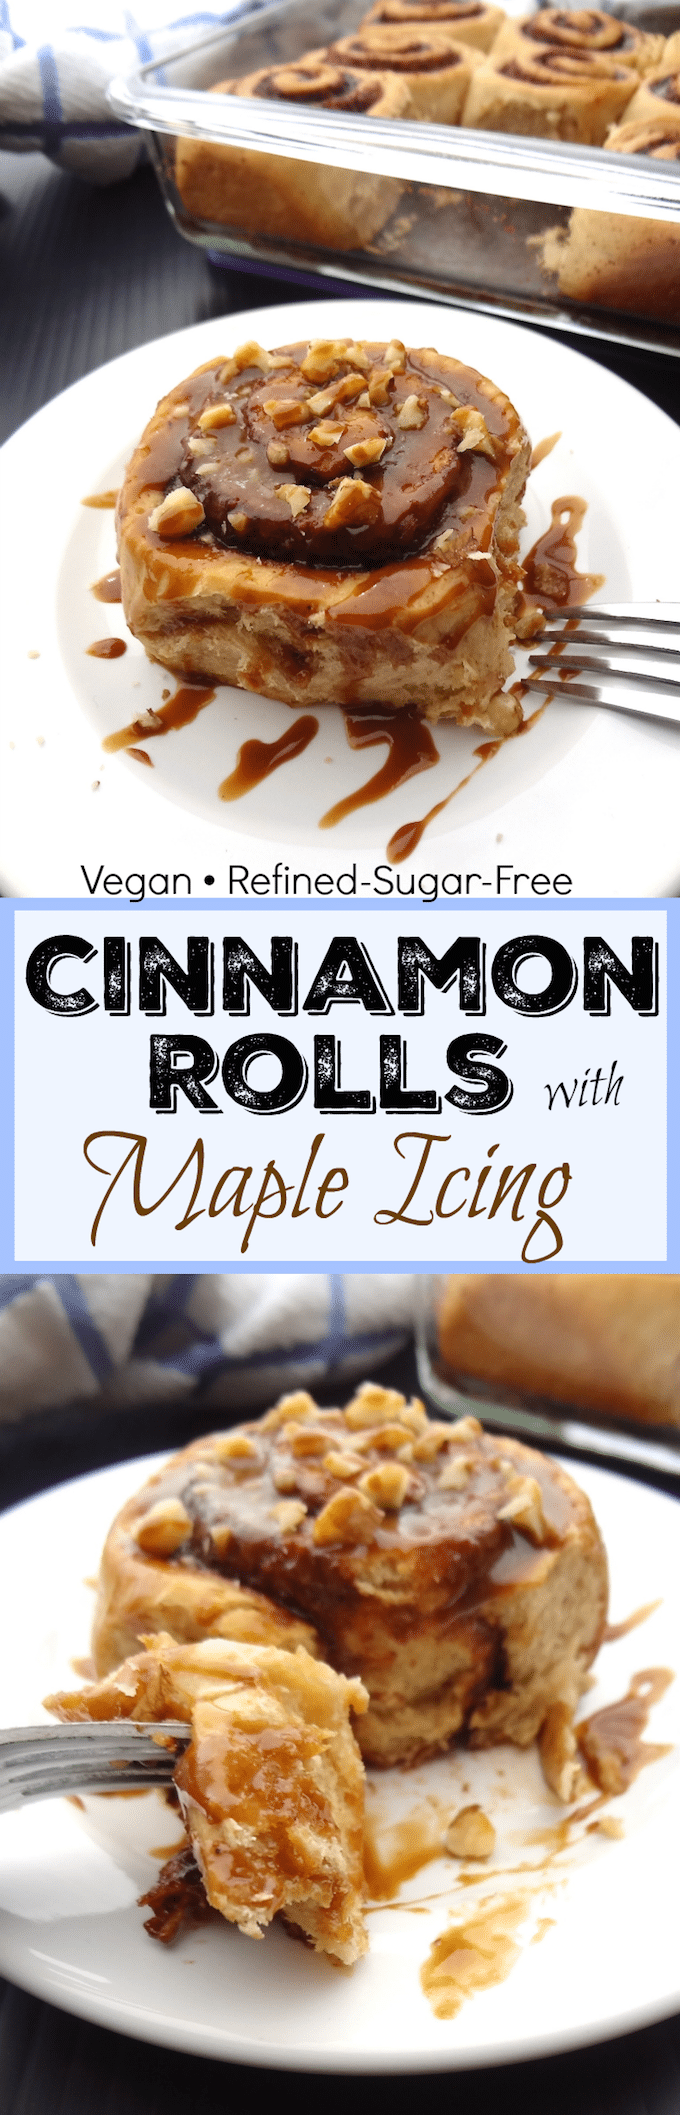 Refined sugar free vegan cinnamon rolls are topped with a rich maple icing.  This homemade treat is soft, fluffy and perfectly sweetened!  Enjoy these decadent, ready in about an hour, cinnamon rolls for breakfast this weekend!  #refinedsugarfree #veganrecipes #veganbreakfast #cinnamonrolls  #vegancinnamonrolls